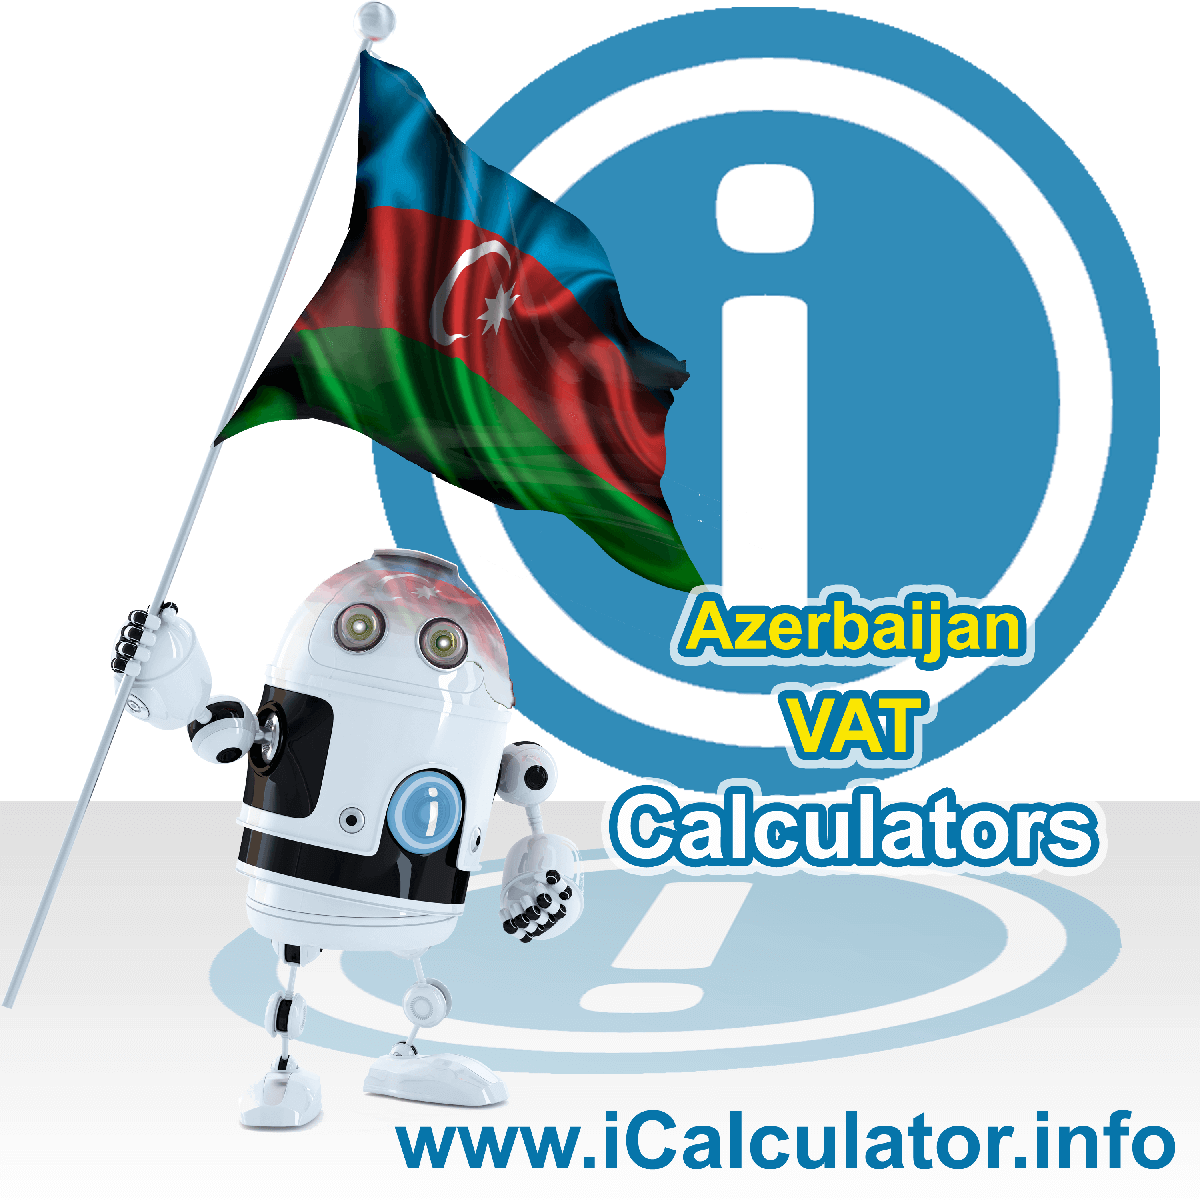 Azerbaijan VAT Calculator. This image shows the Azerbaijan flag and information relating to the VAT formula used for calculating Value Added Tax in Azerbaijan using the Azerbaijan VAT Calculator in 2020